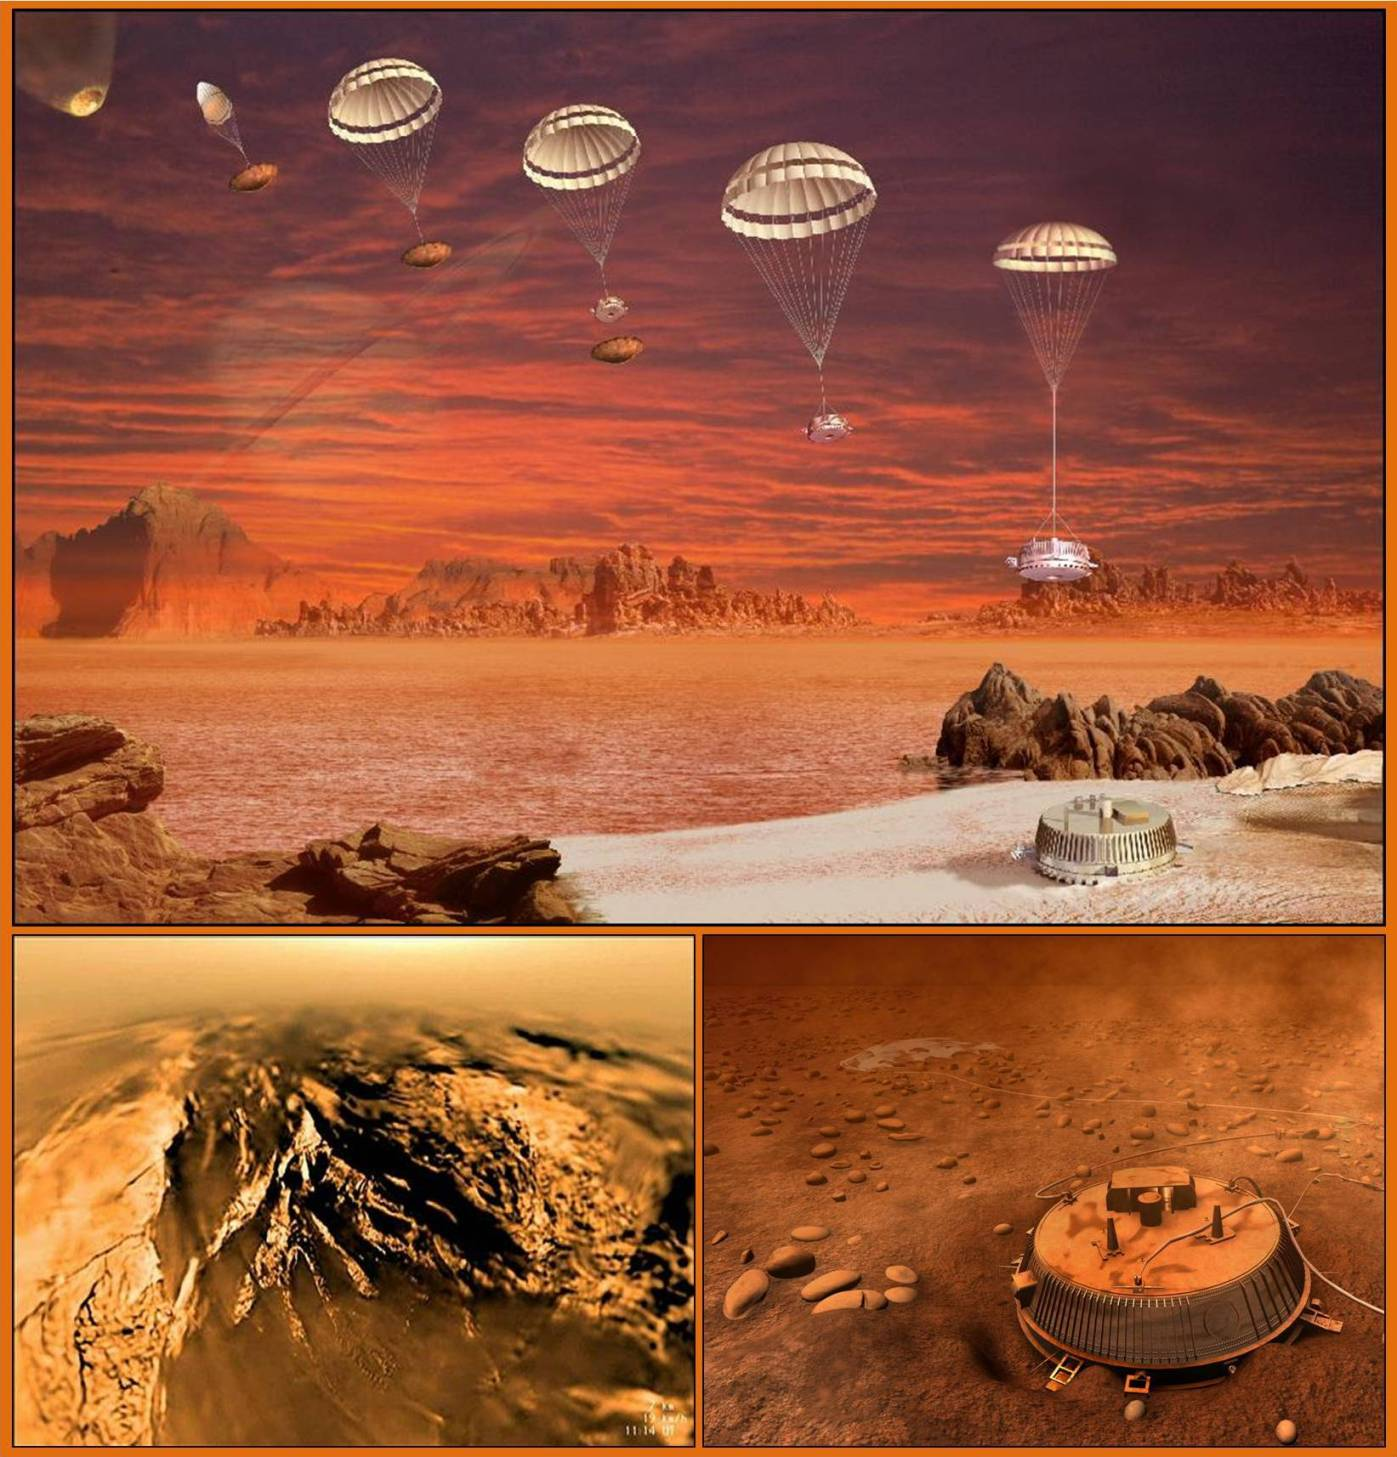 The Huygens probe arrives at Titan in 2005